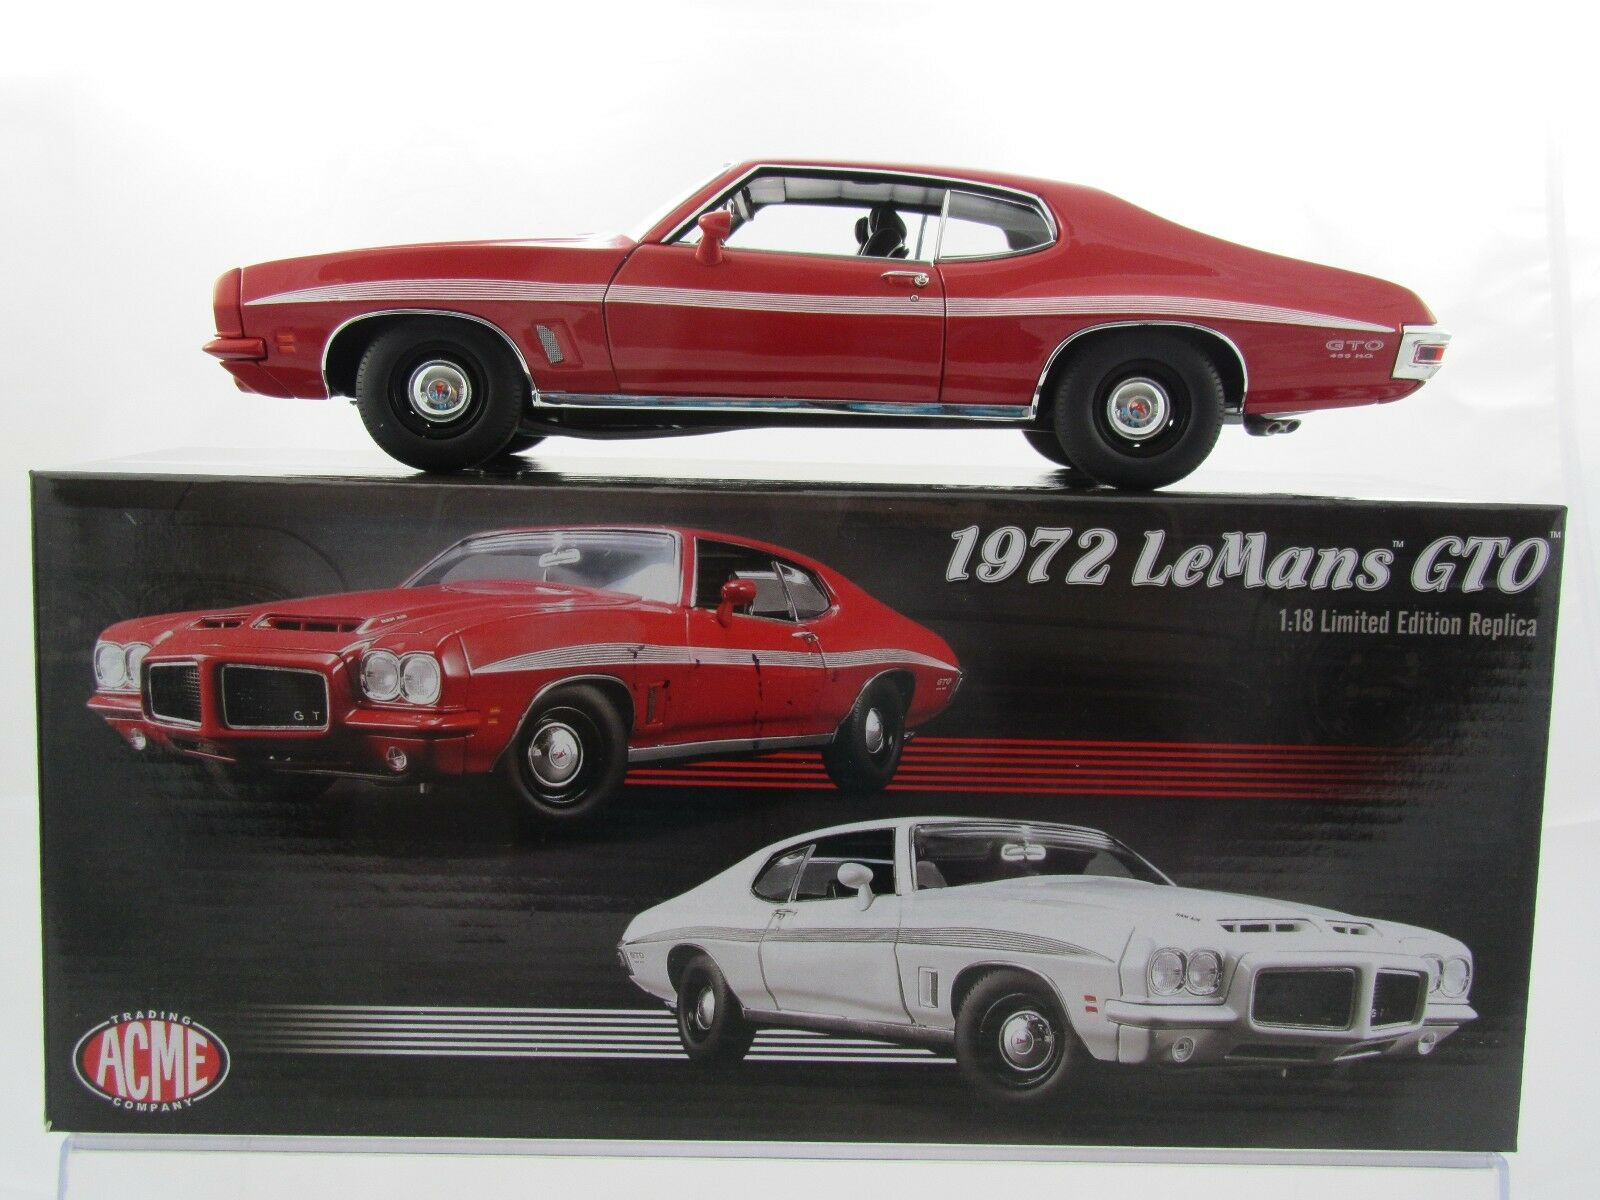 Acme 1972 LeMans GTO in rot A1801210